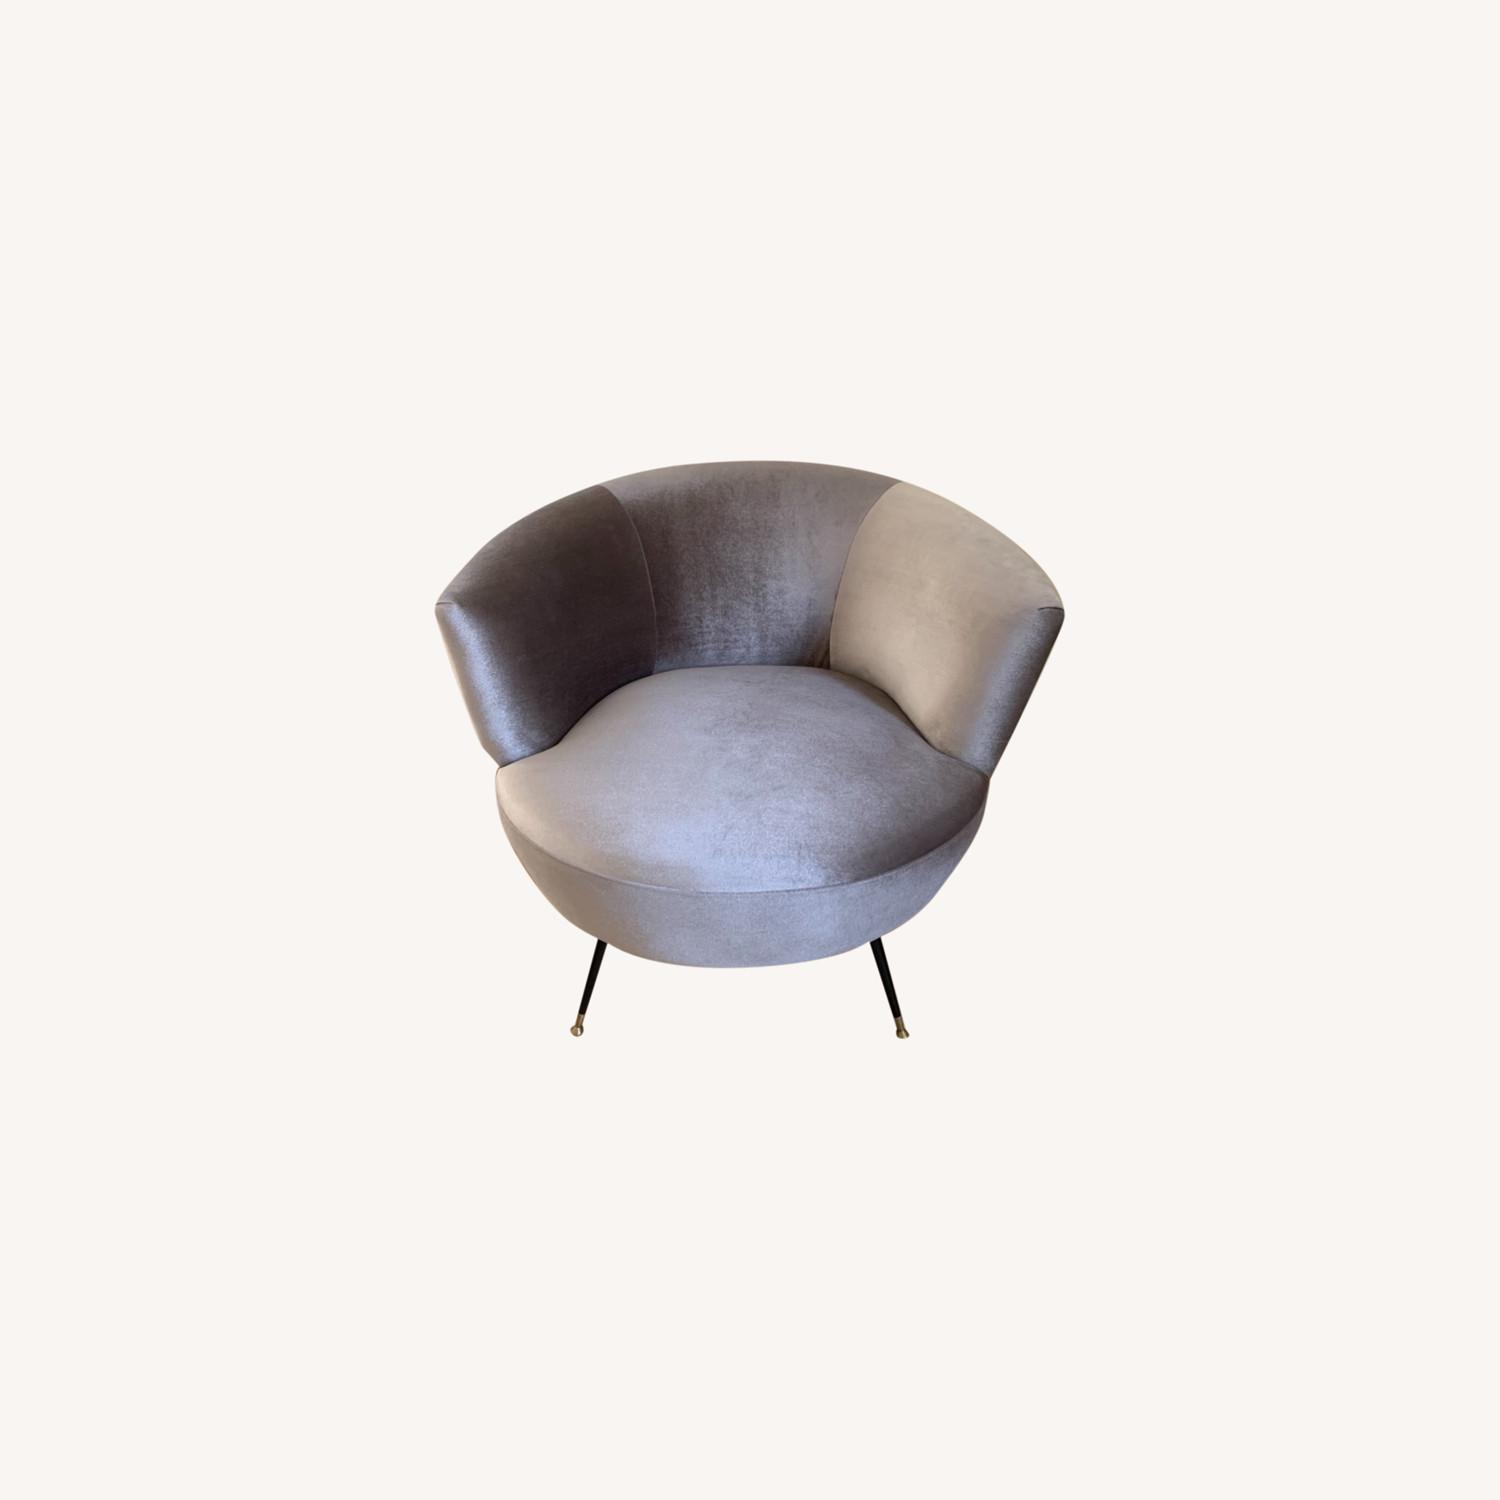 Midcentury Style Curved Chair - image-0